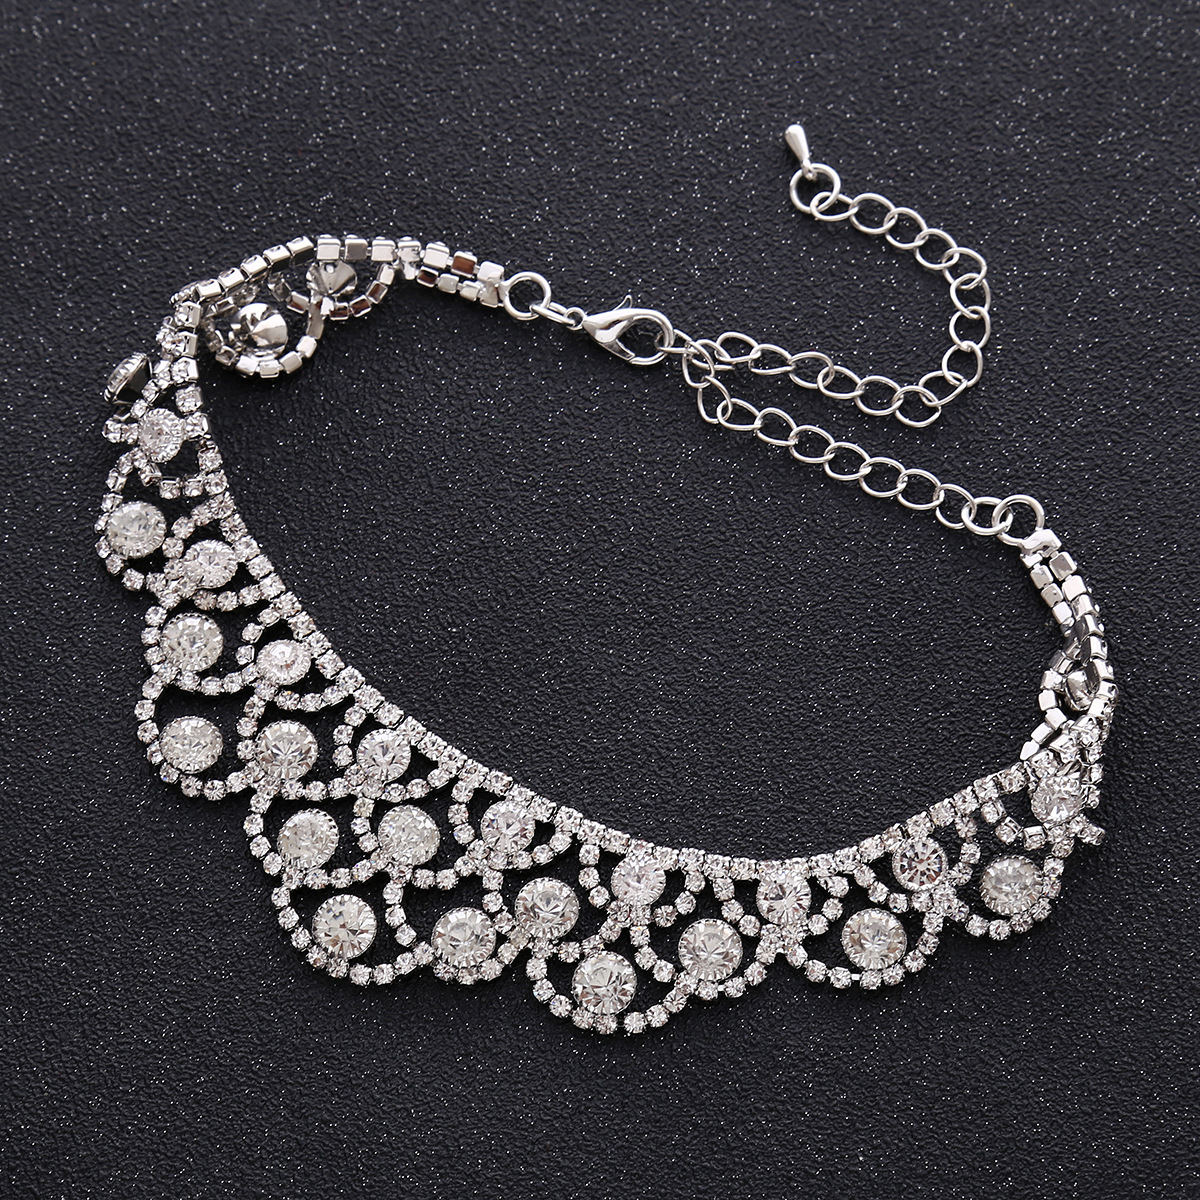 Occident and the United States alloy Diamond necklace (Gun black)NHNMD3813-Gun black